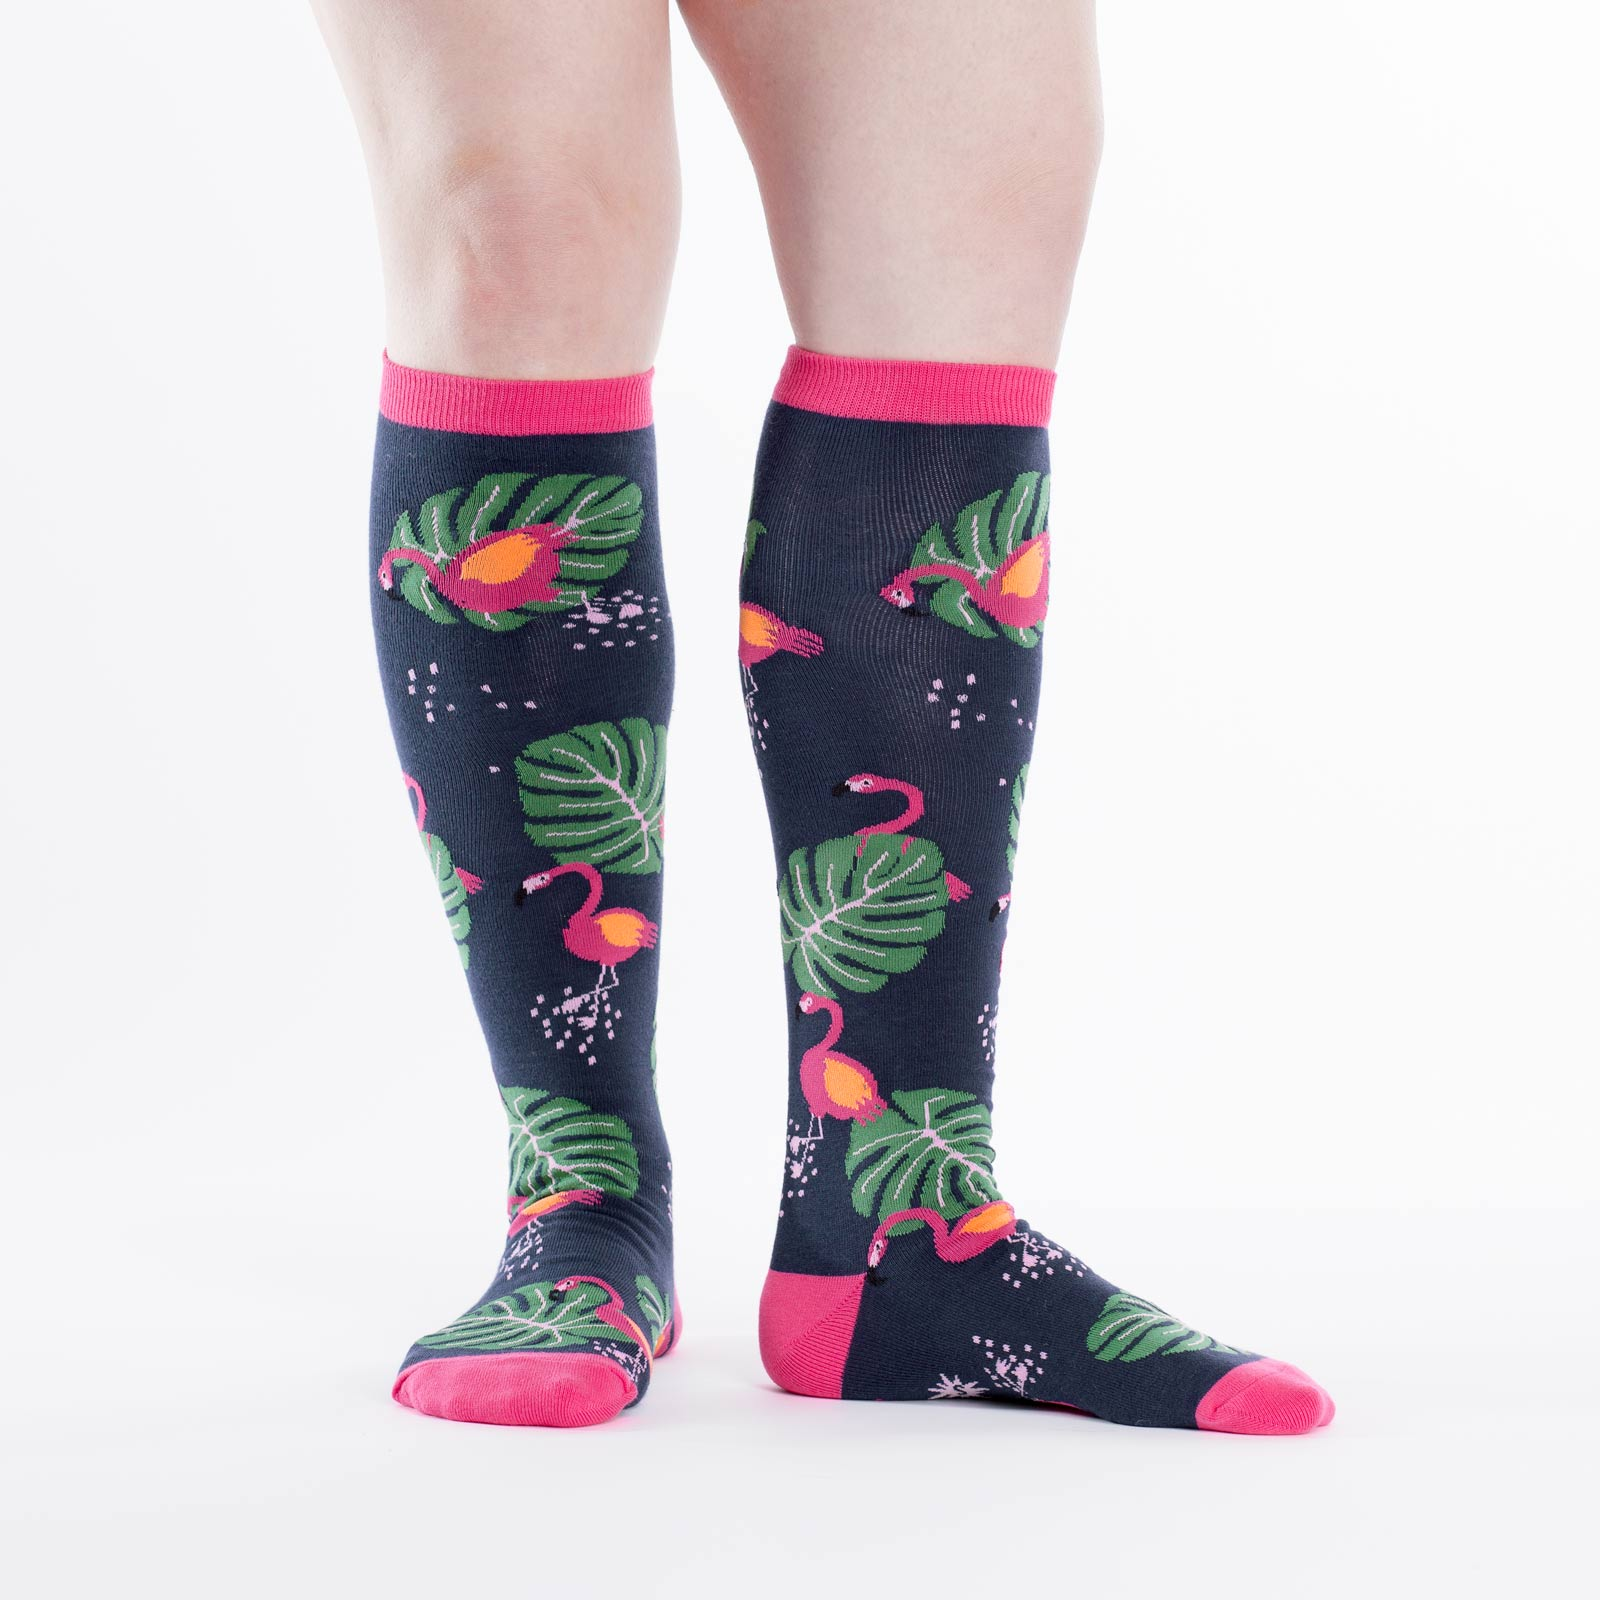 cec0a8bff8a Flamingo Knee High Socks New Women s Size 9-11 Bright Colorful Birds ...